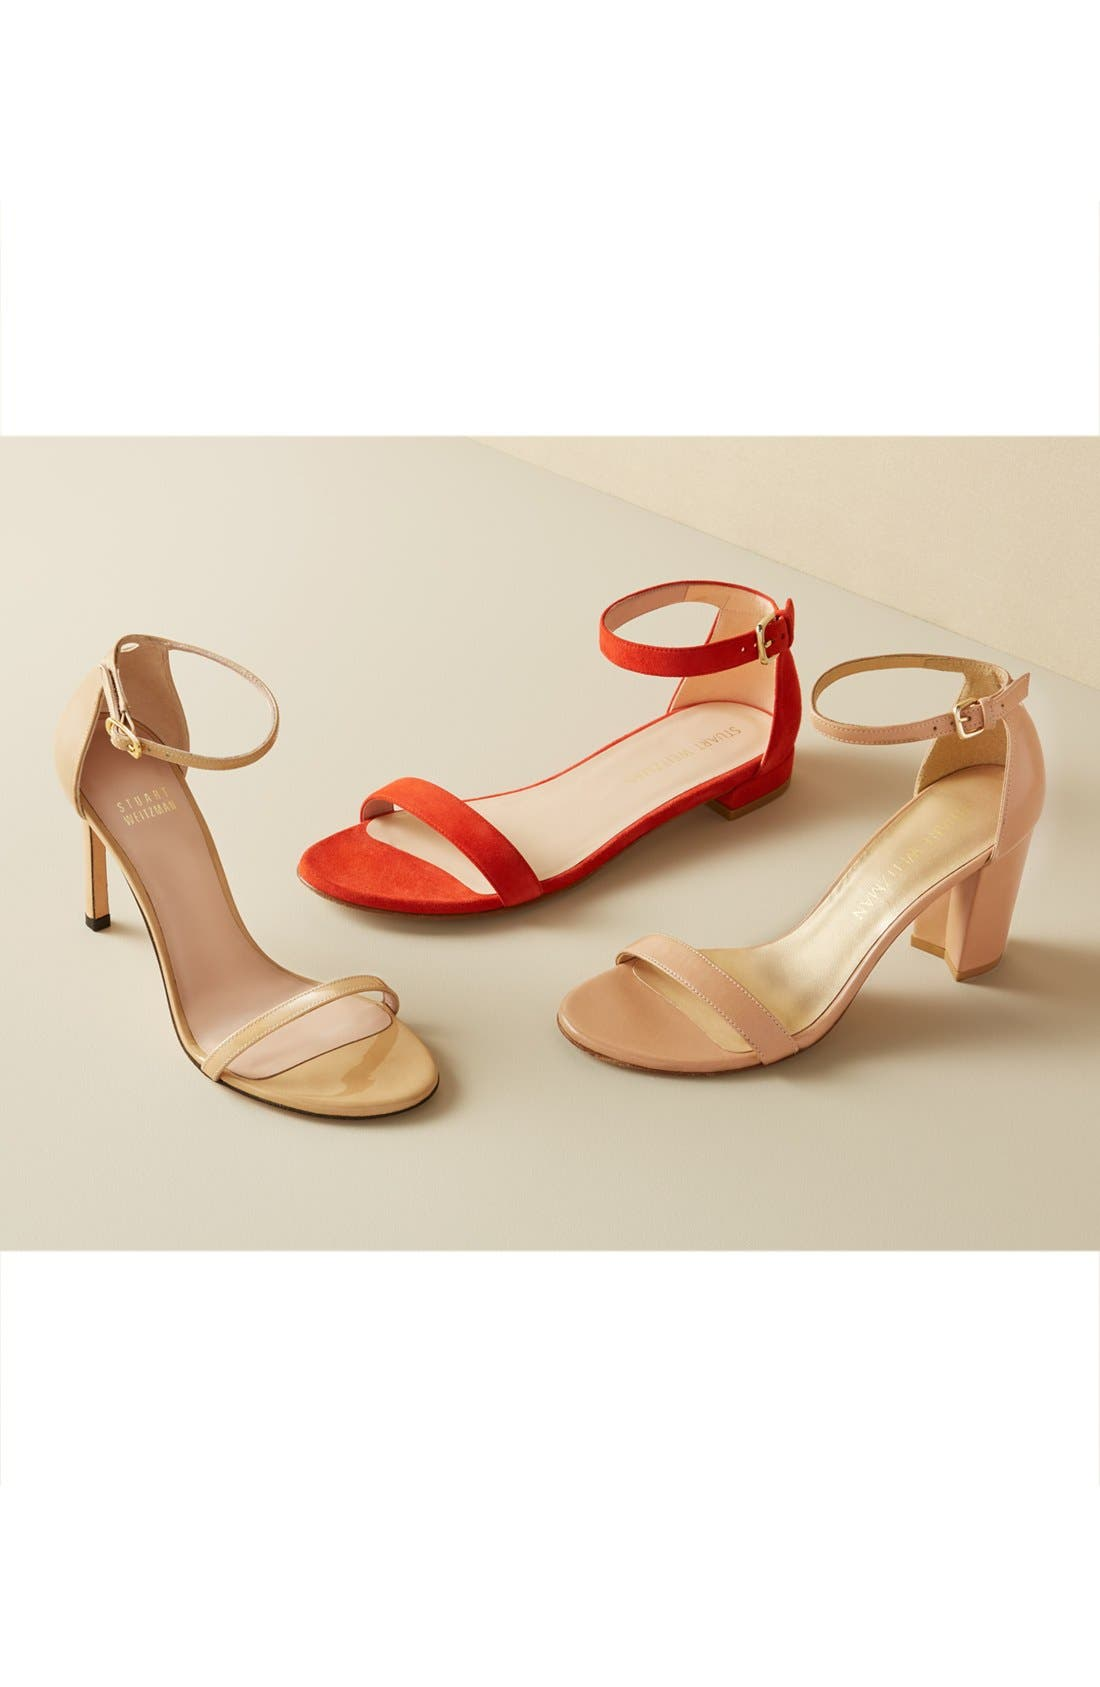 NearlyNude Ankle Strap Sandal,                             Alternate thumbnail 7, color,                             ADOBE ANILINE